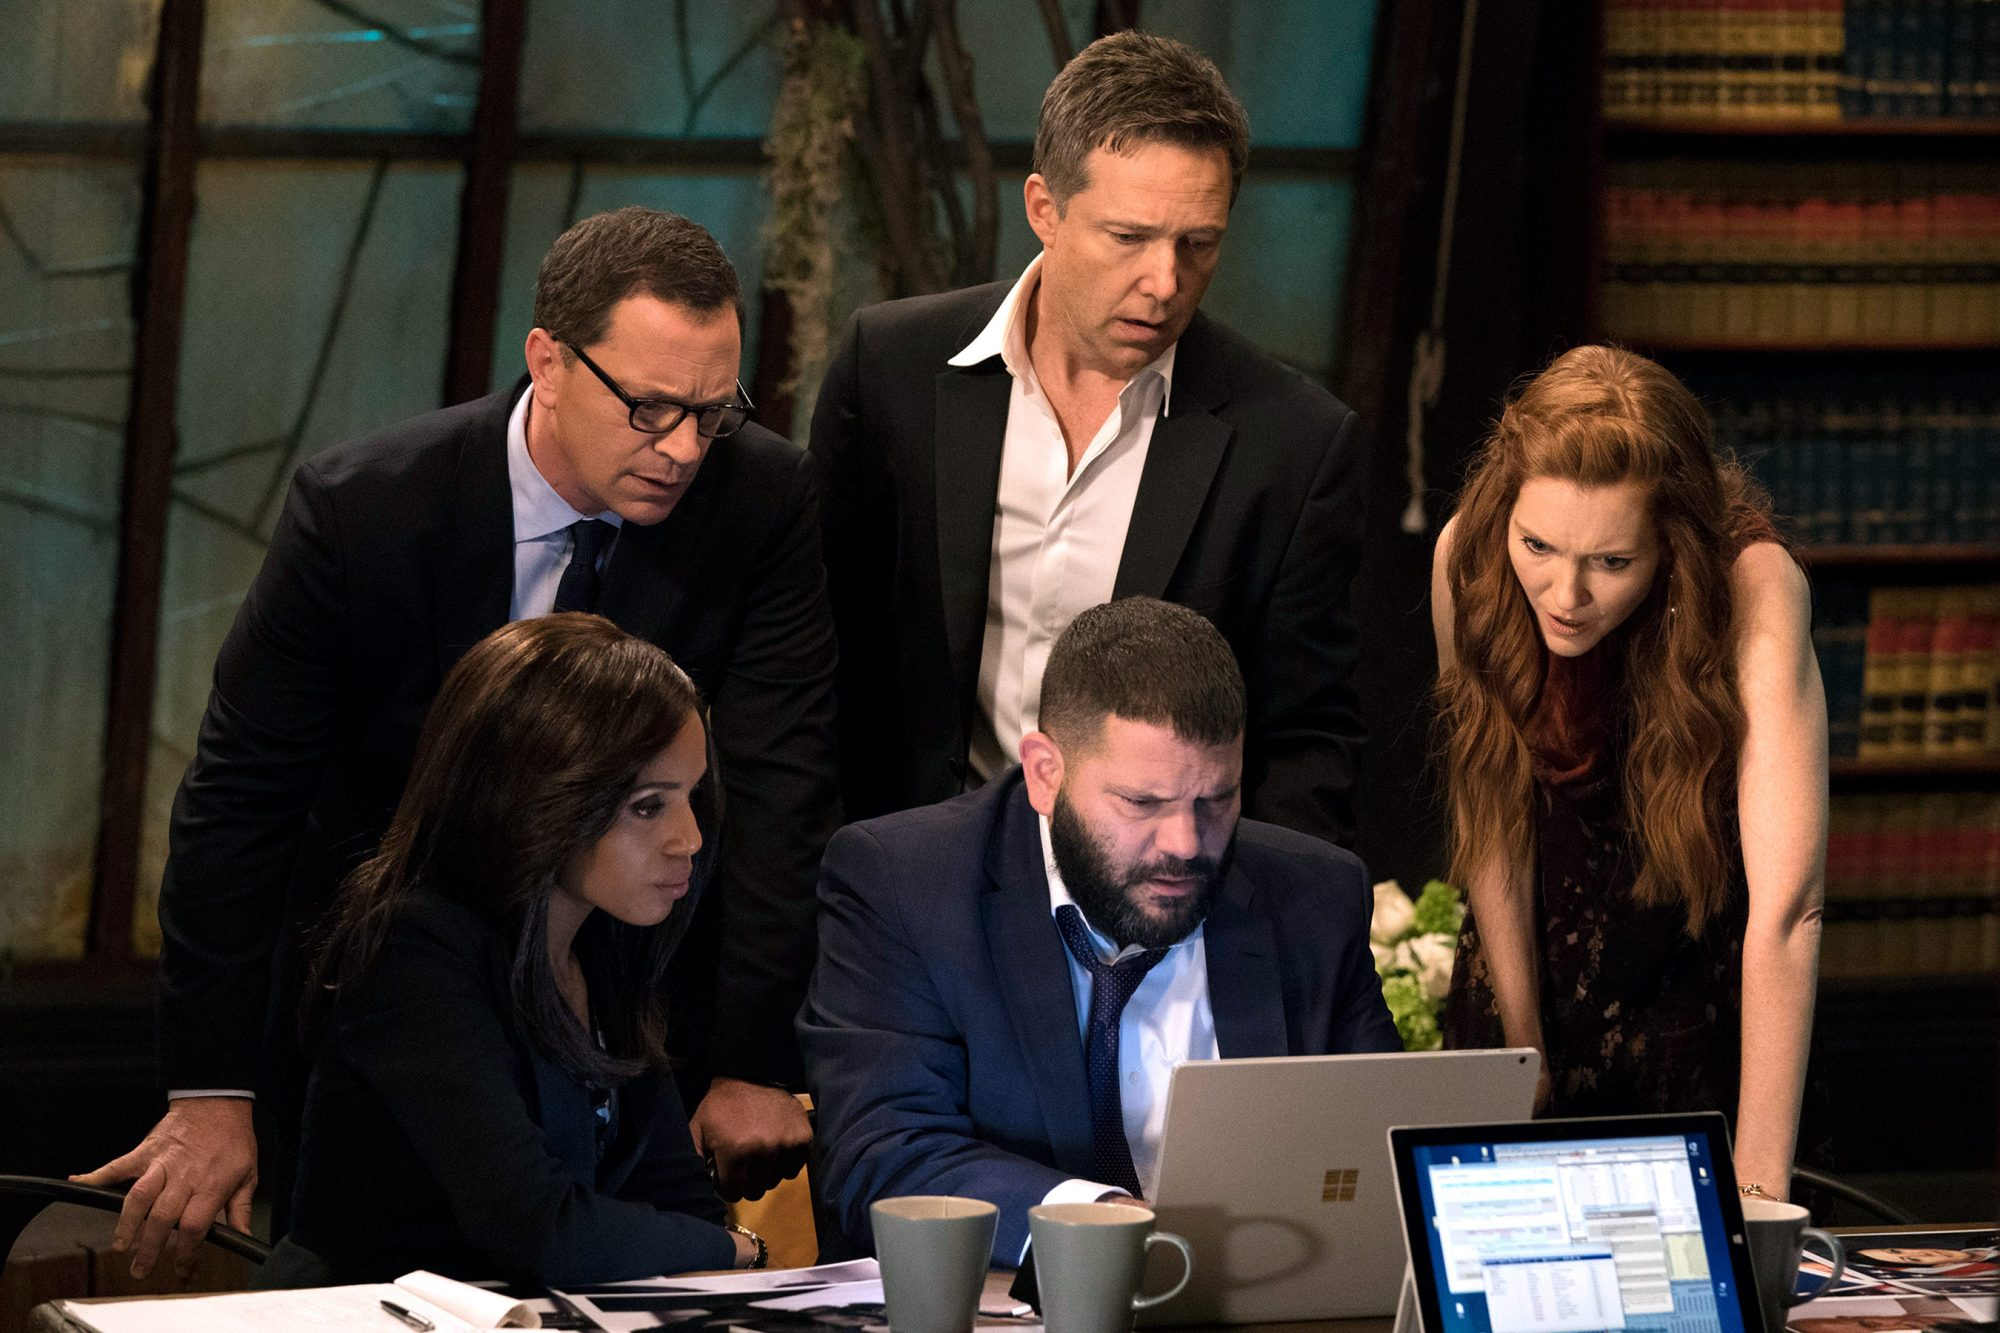 KERRY WASHINGTON, JOSHUA MALINA, GUILLERMO DIAZ, GEORGE NEWBERN, DARBY STANCHFIELD